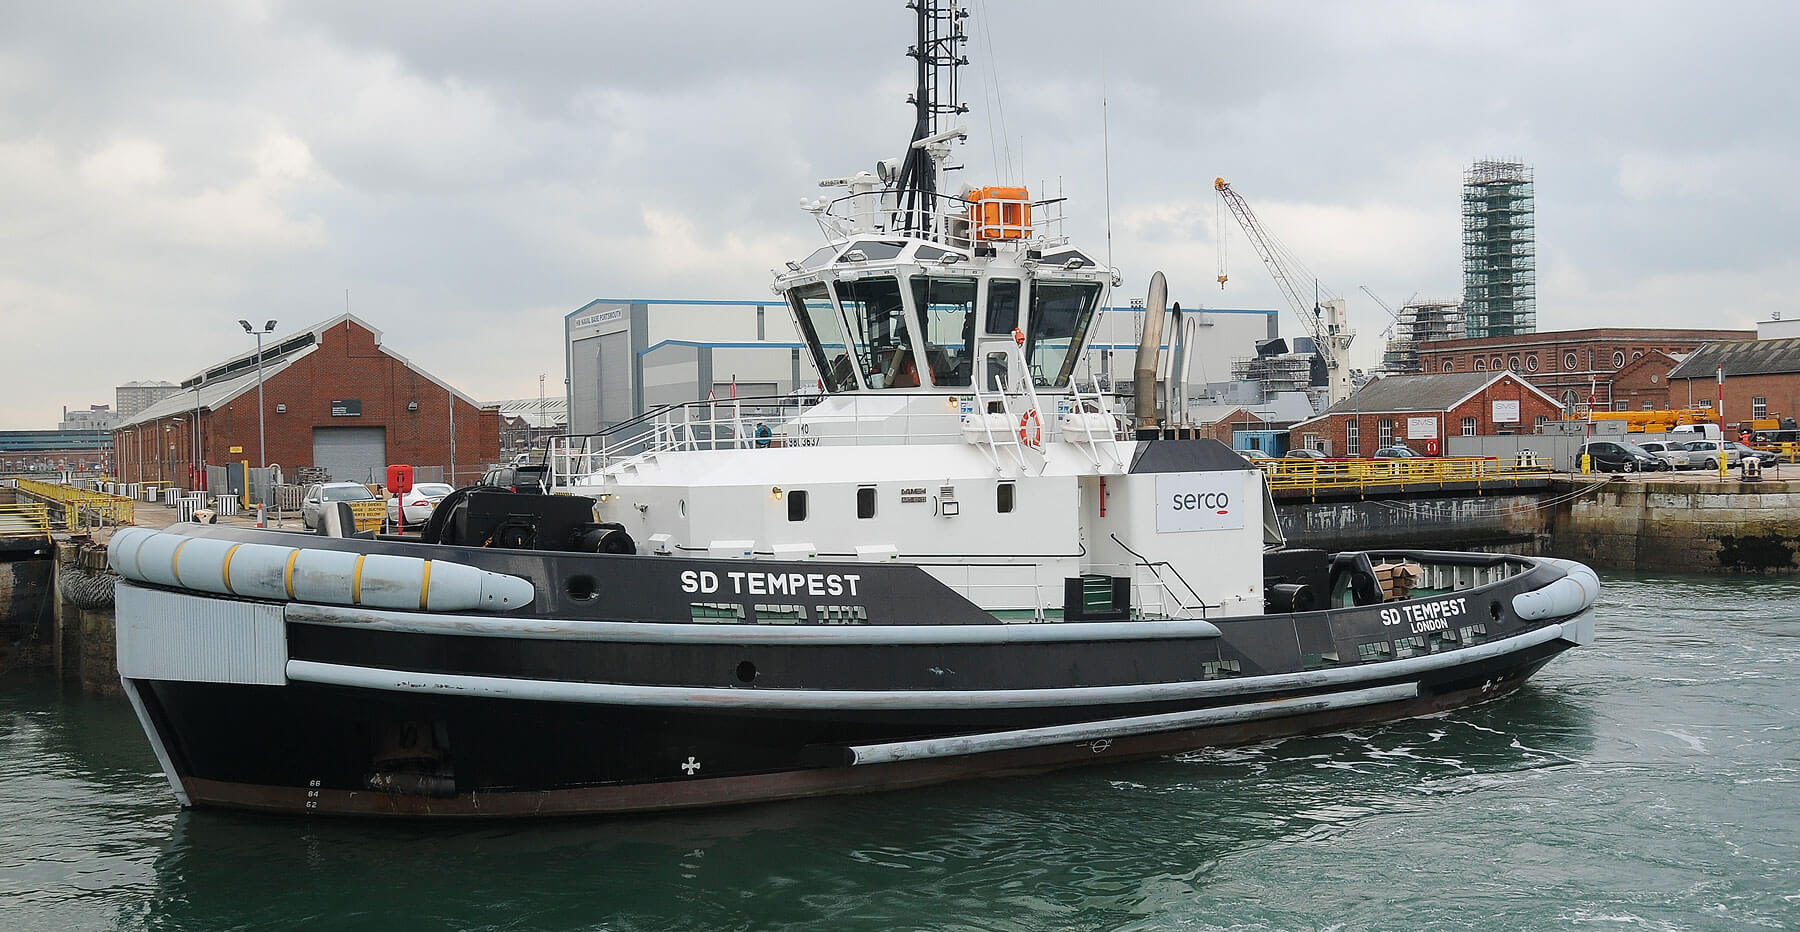 Supporting the fleet – Serco services for the Royal Navy